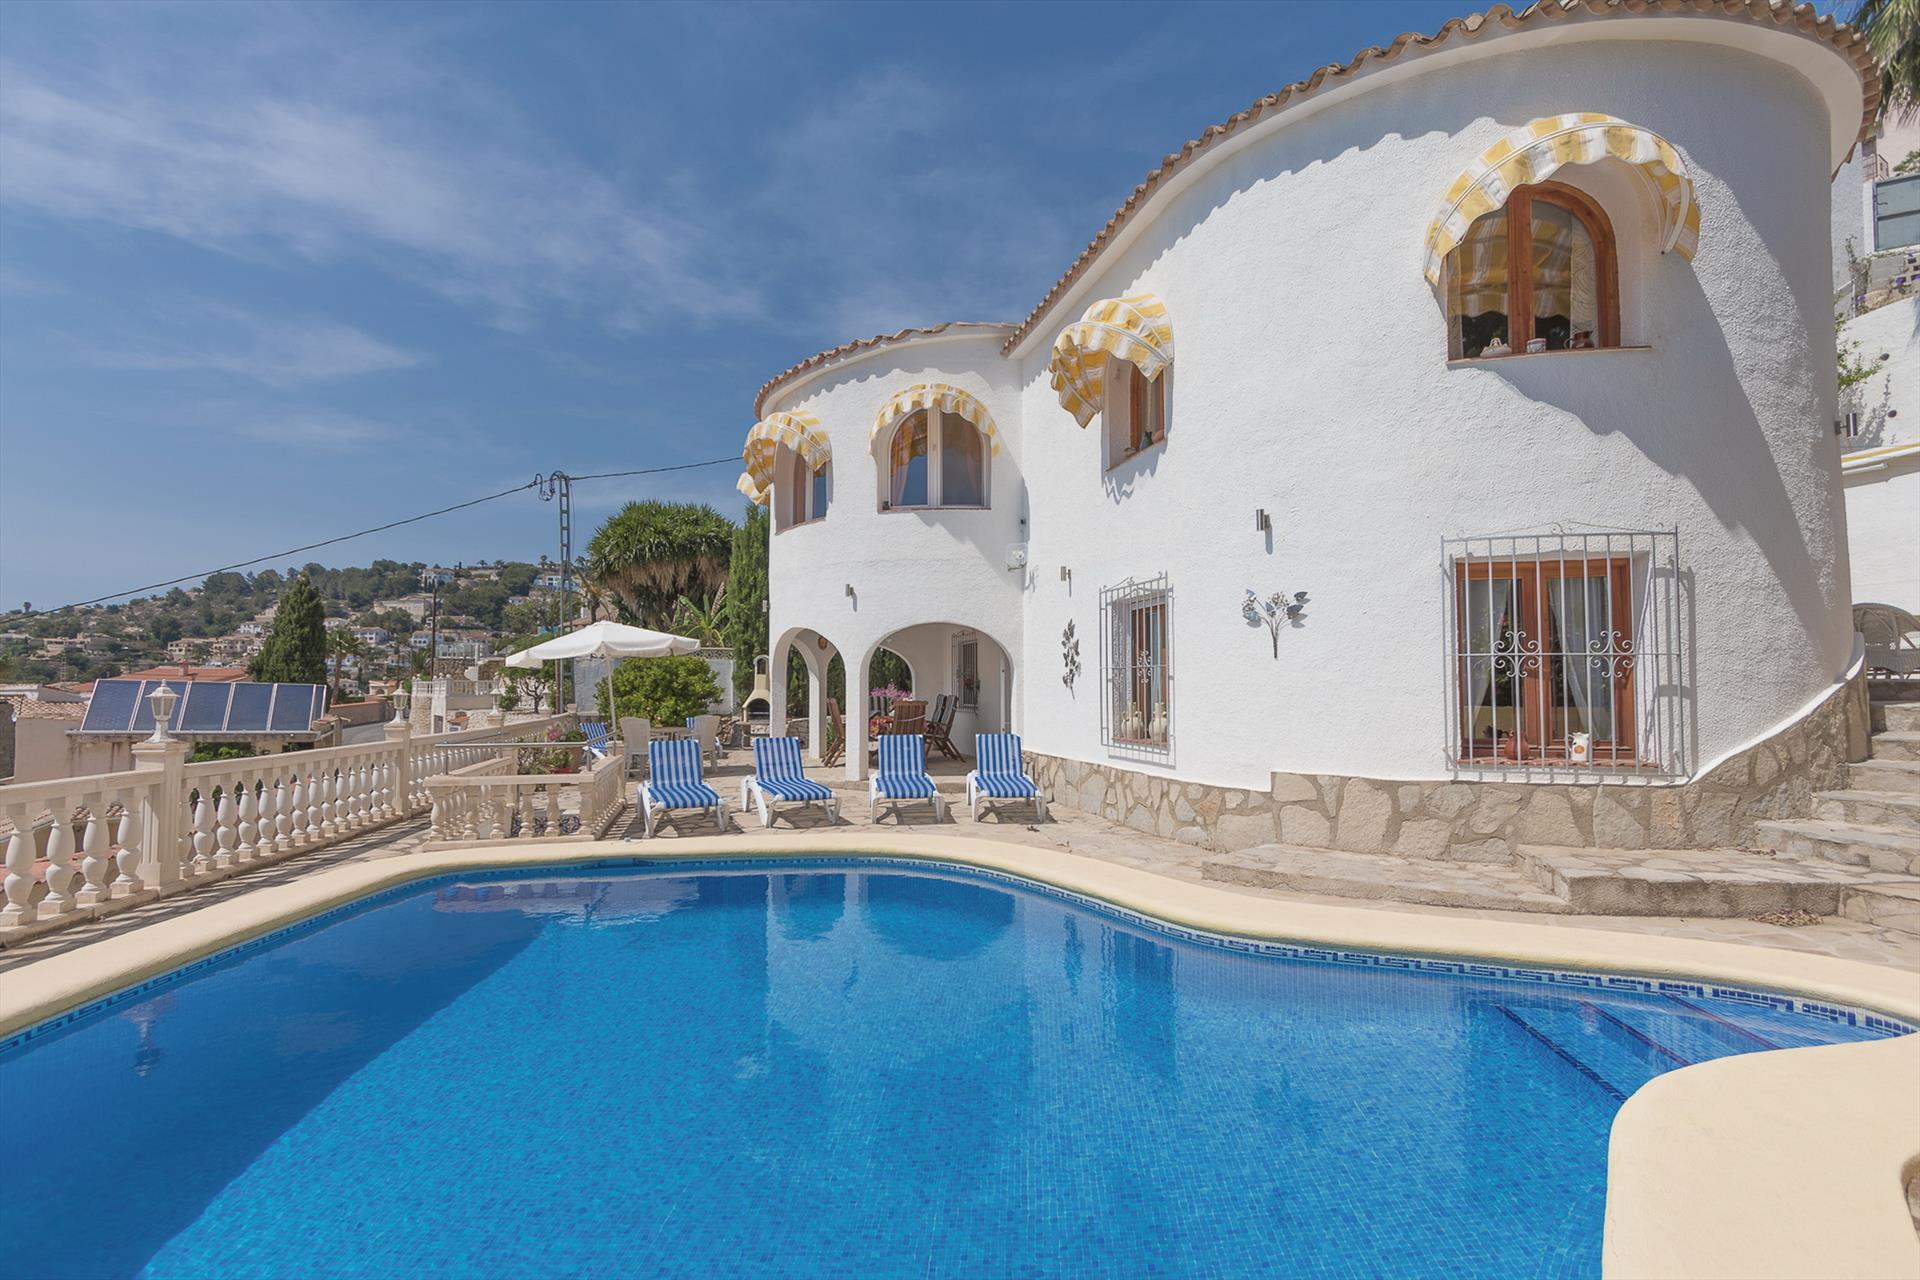 Bellavista 6P, Classic and comfortable villa in Benissa, on the Costa Blanca, Spain  with private pool for 6 persons.....